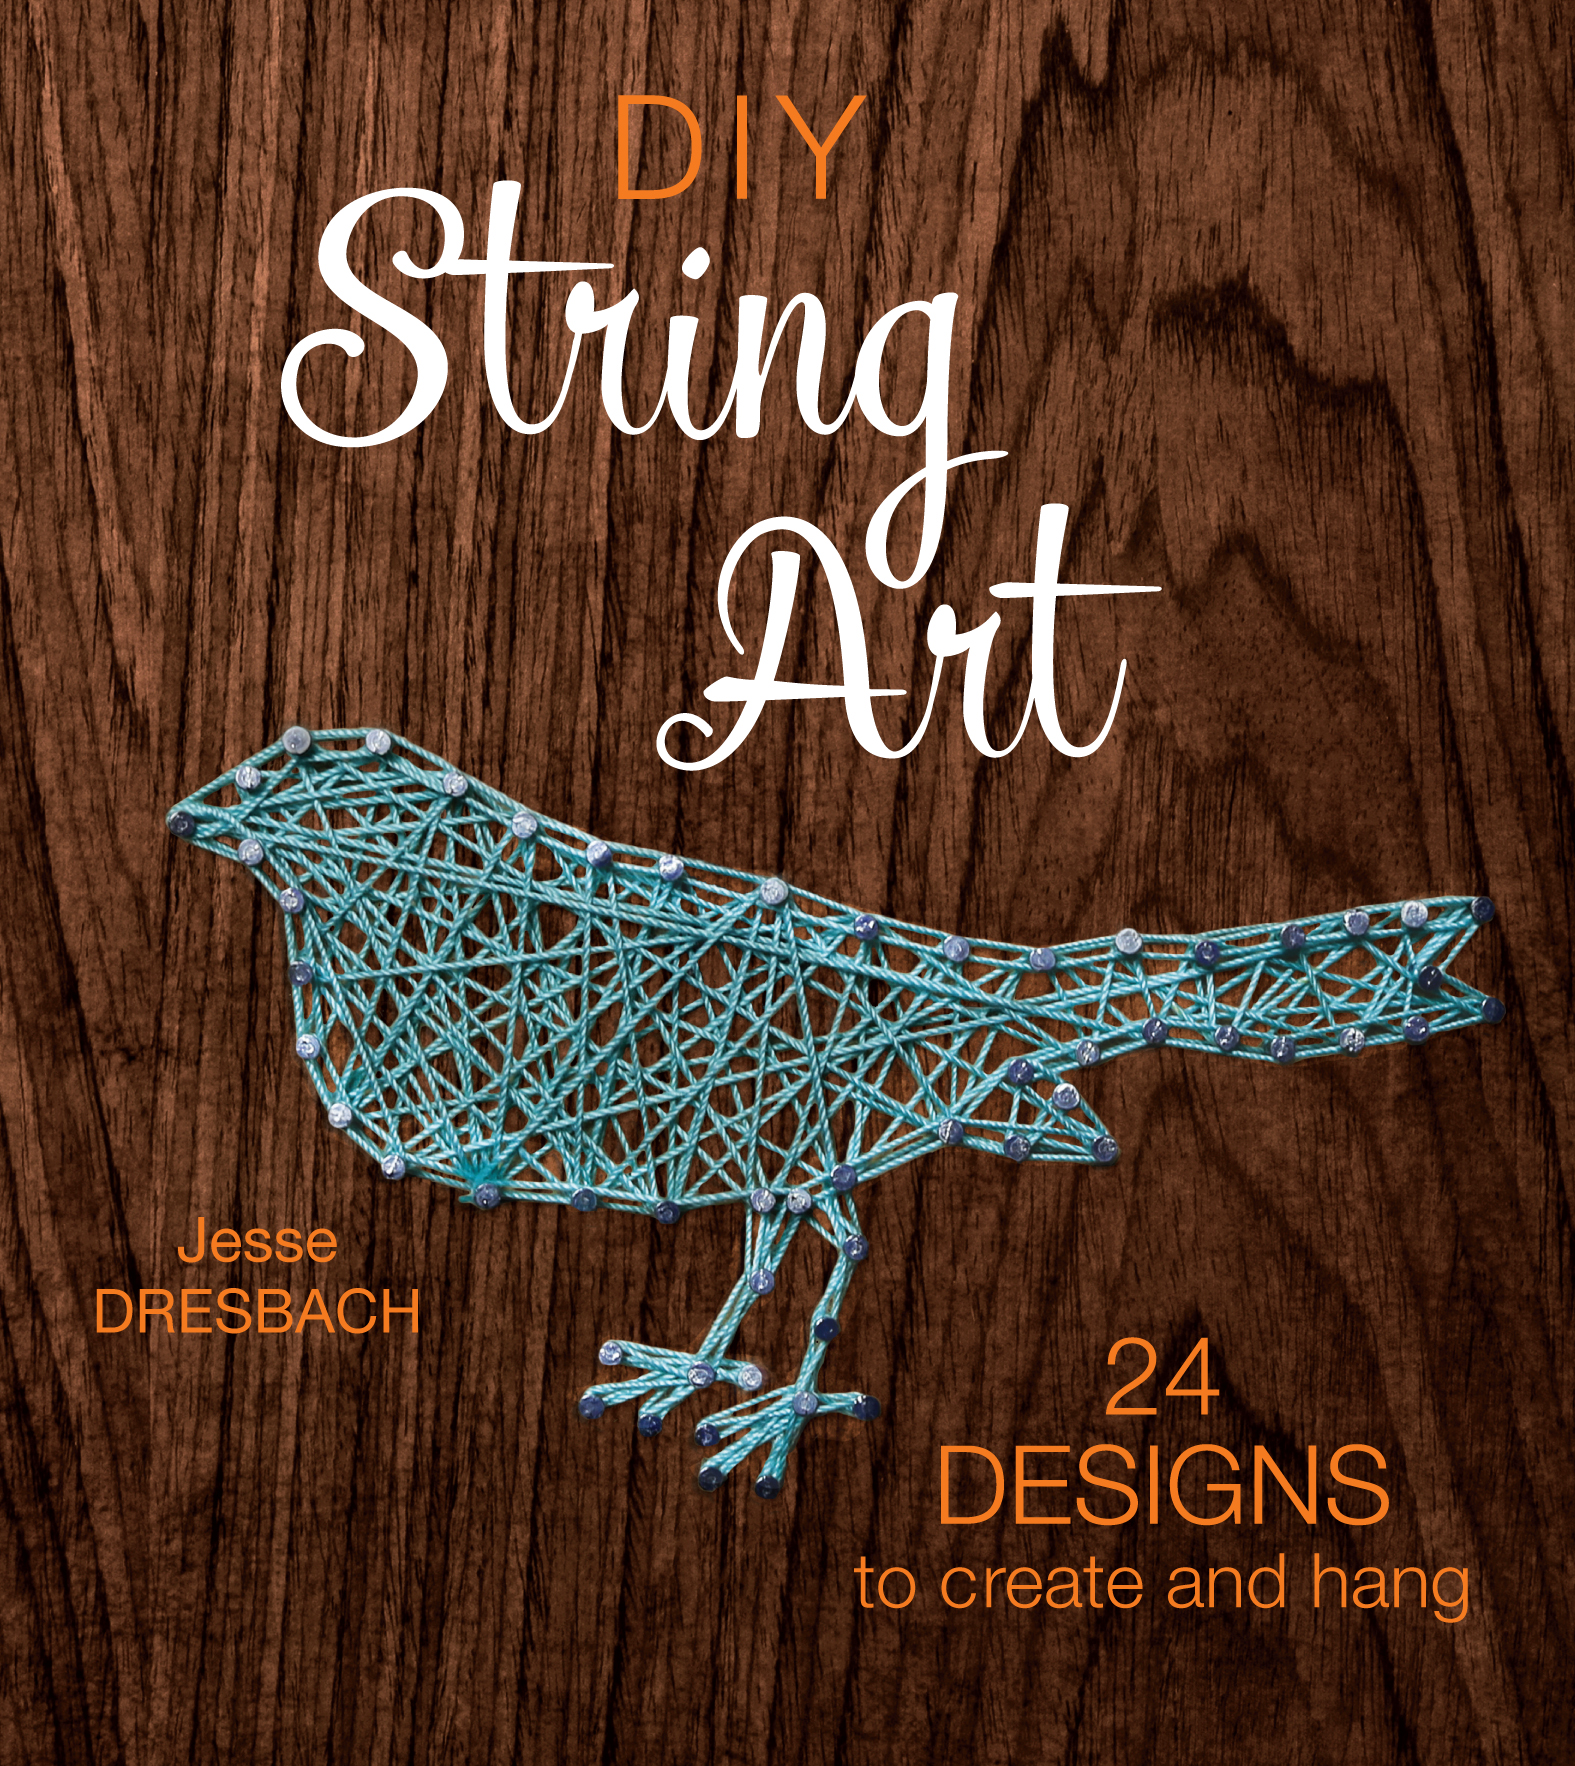 DIY String Art High Res Cover